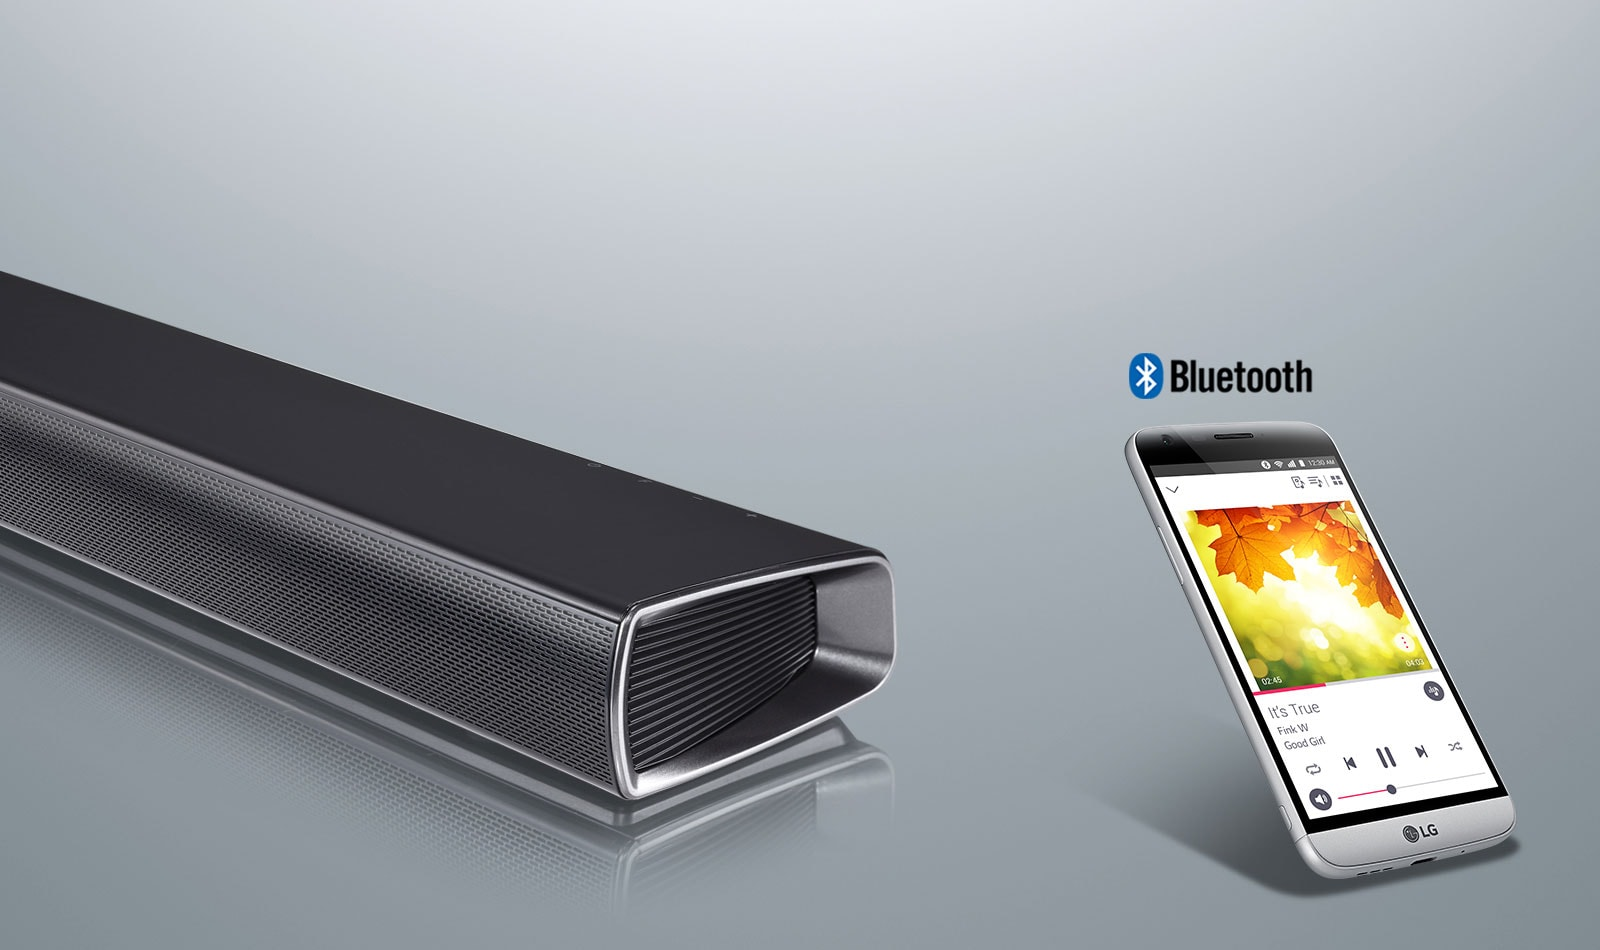 Bluetooth Stand-by, wake up your bar on demand